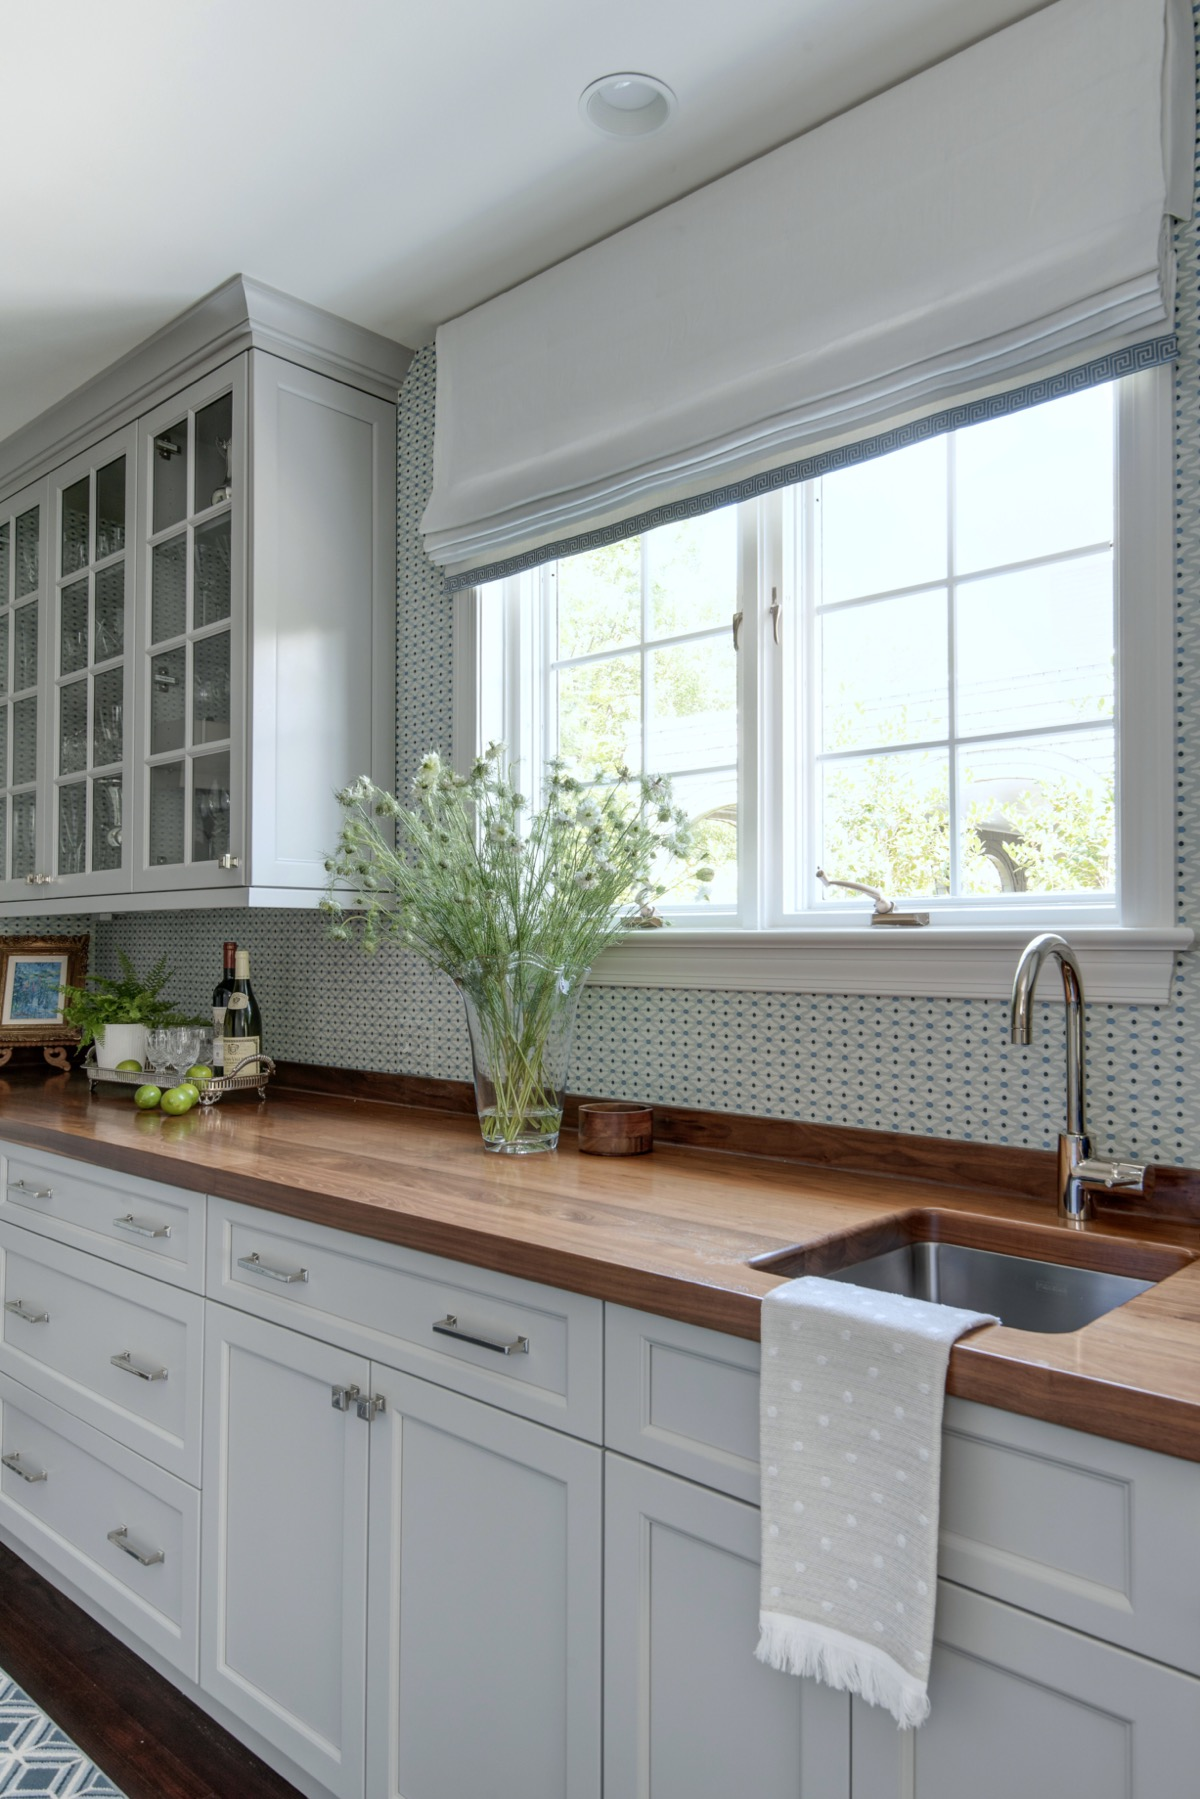 Counter Space and Cabinetry